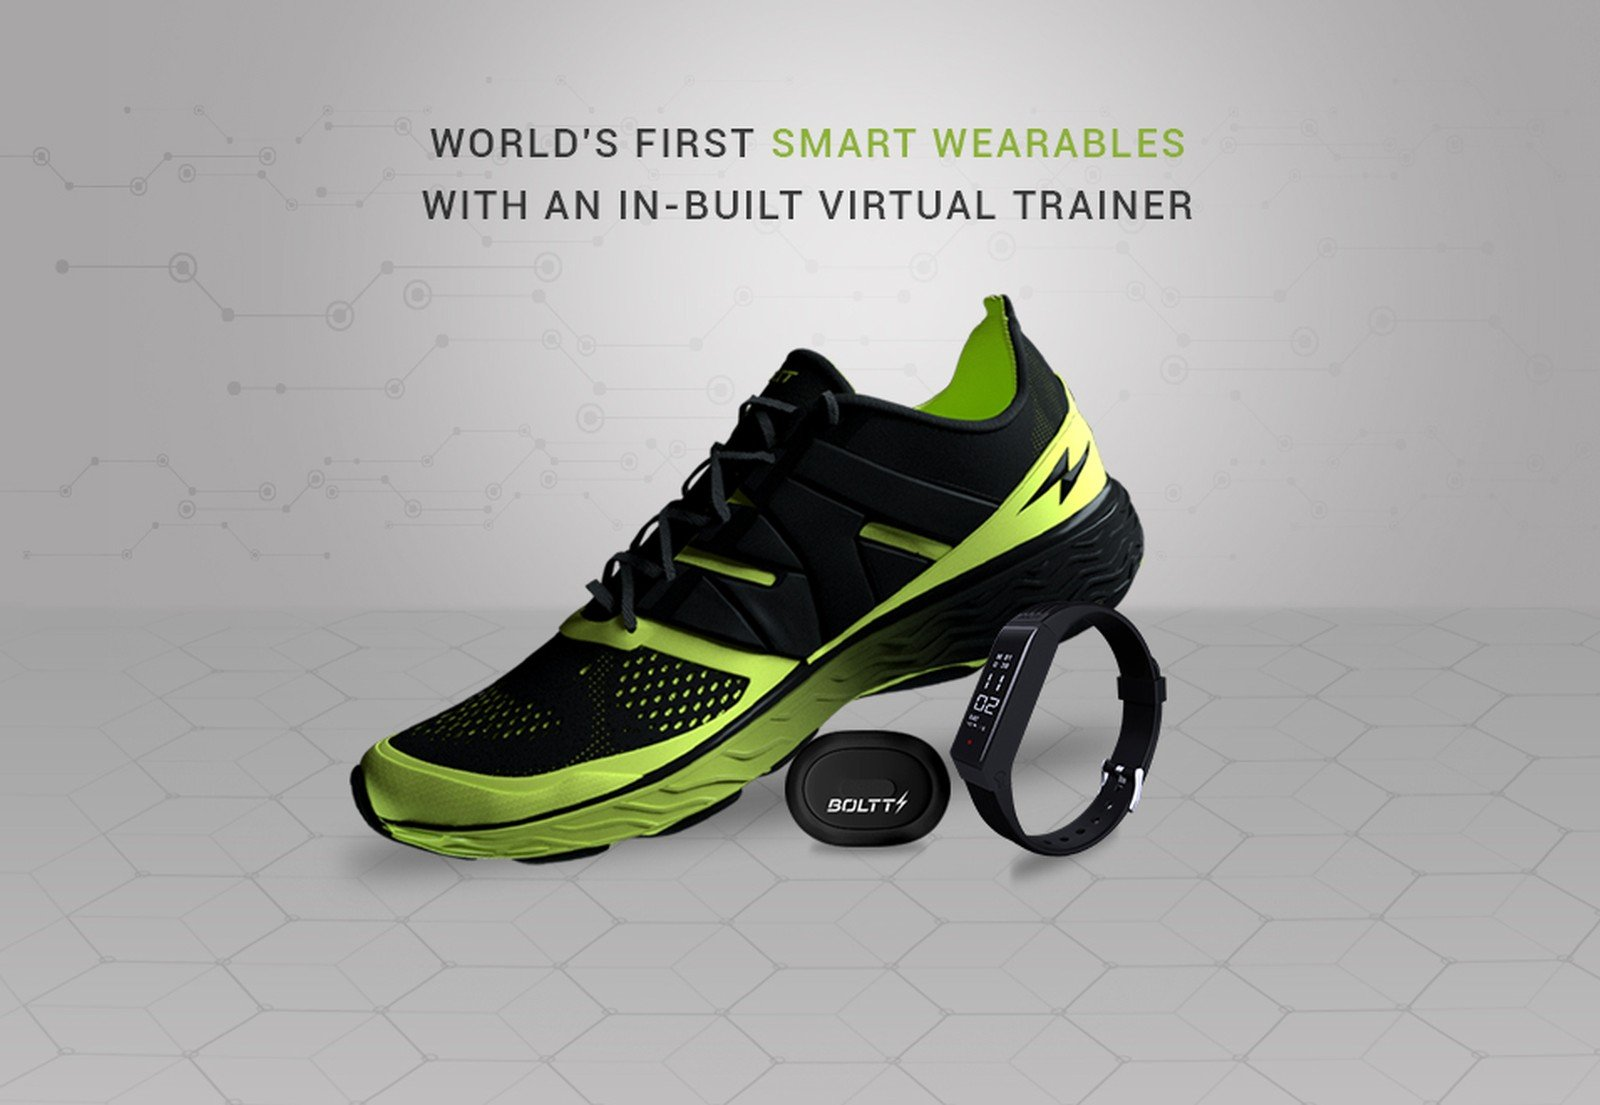 Boltt connected shoes